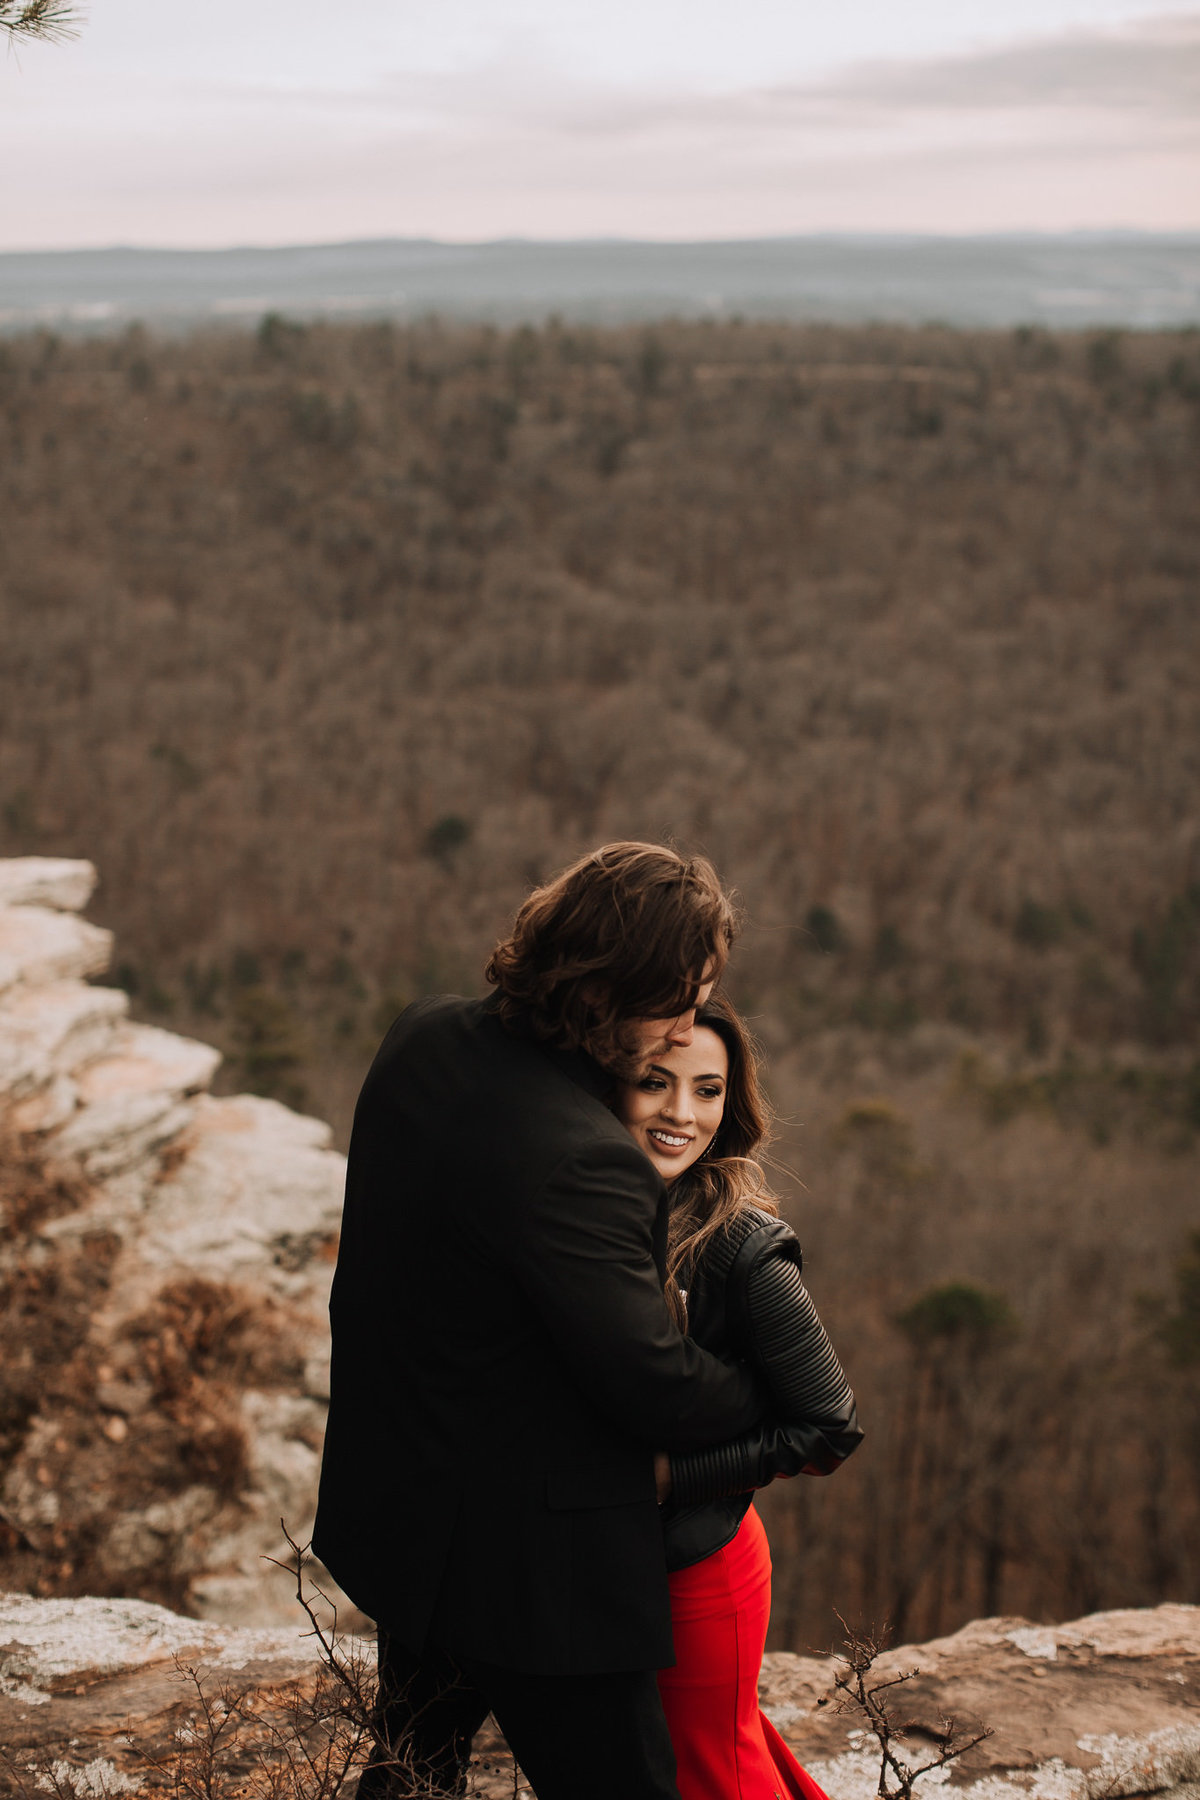 fernanda-and-great-petit-jean-state-park-arkansas-adventerous-couples-engagement-session-43